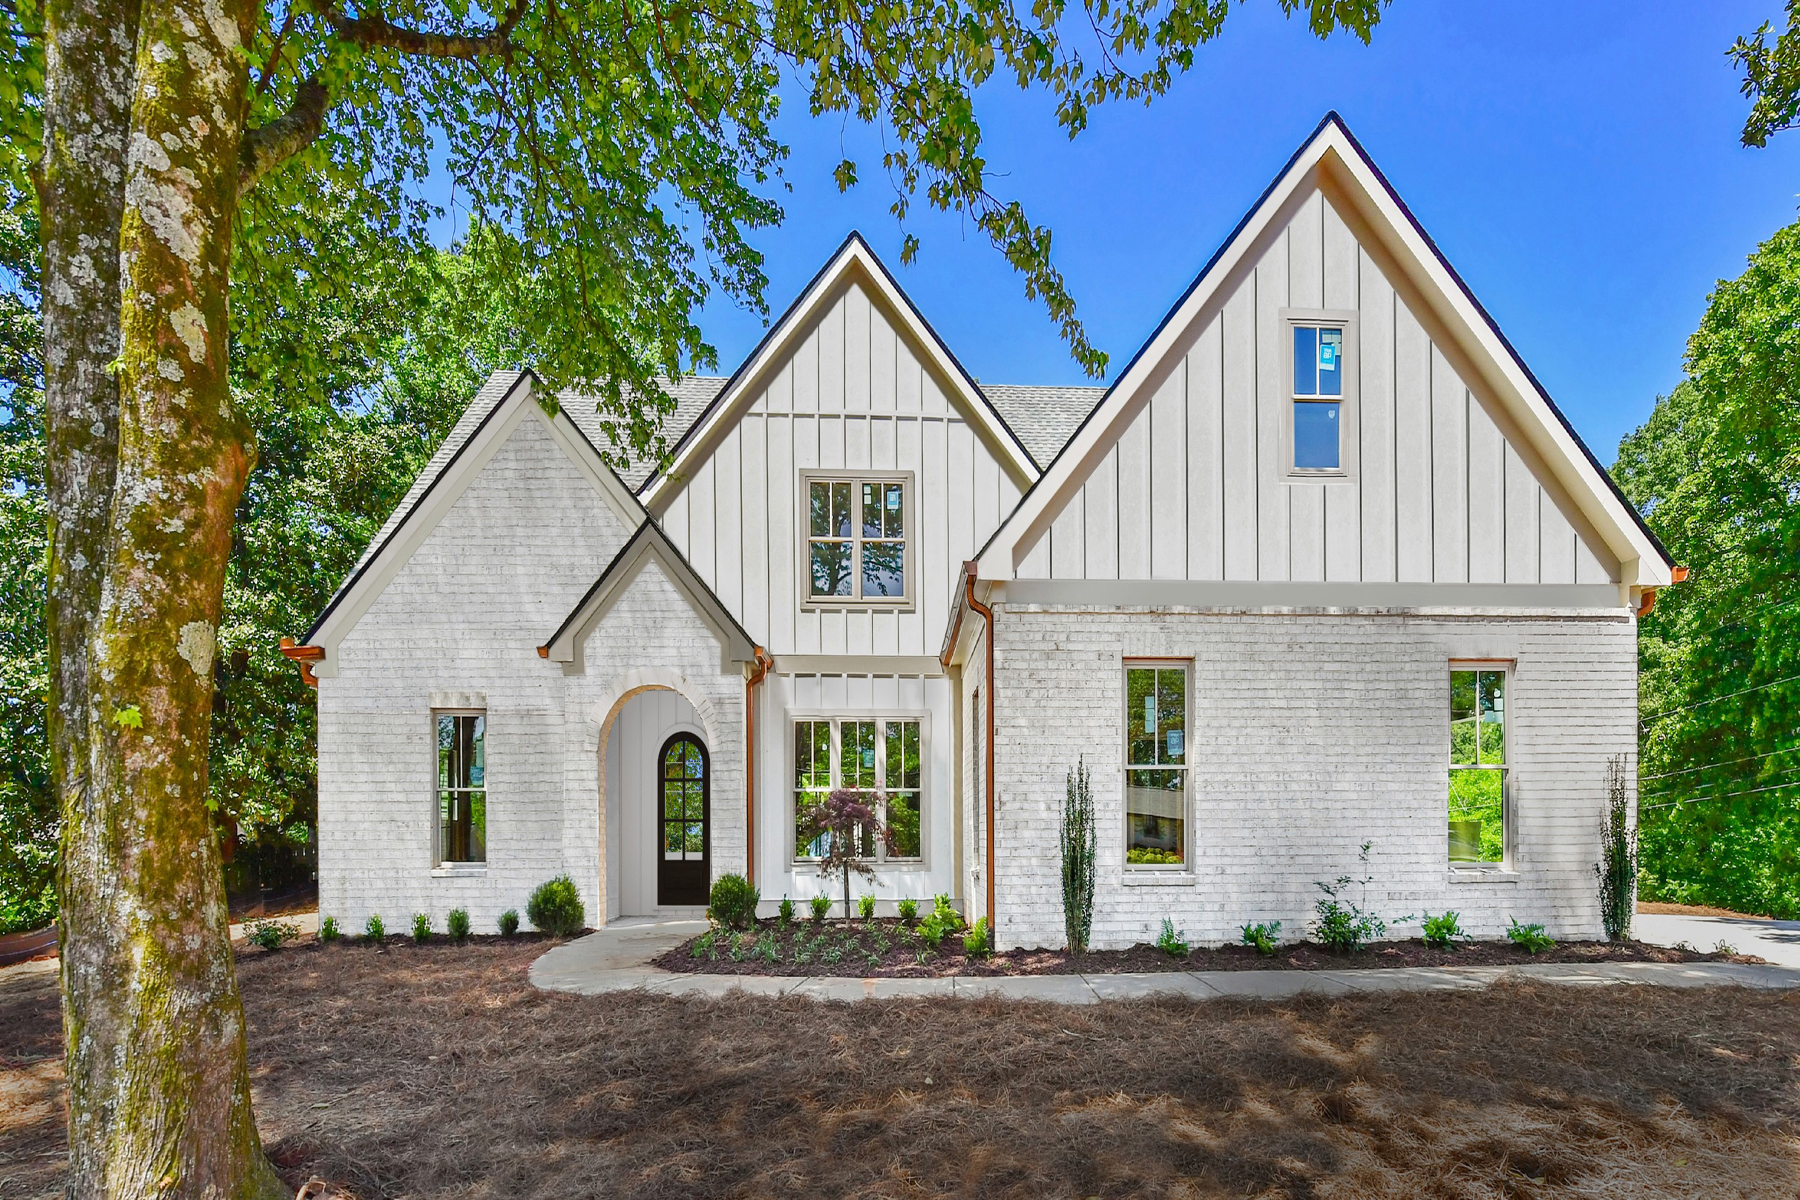 Single Family Homes for Sale at Beautiful New Construction Home in Sought After Vinings Heights 2340 Hills Lane Drive SE Smyrna, Georgia 30080 United States